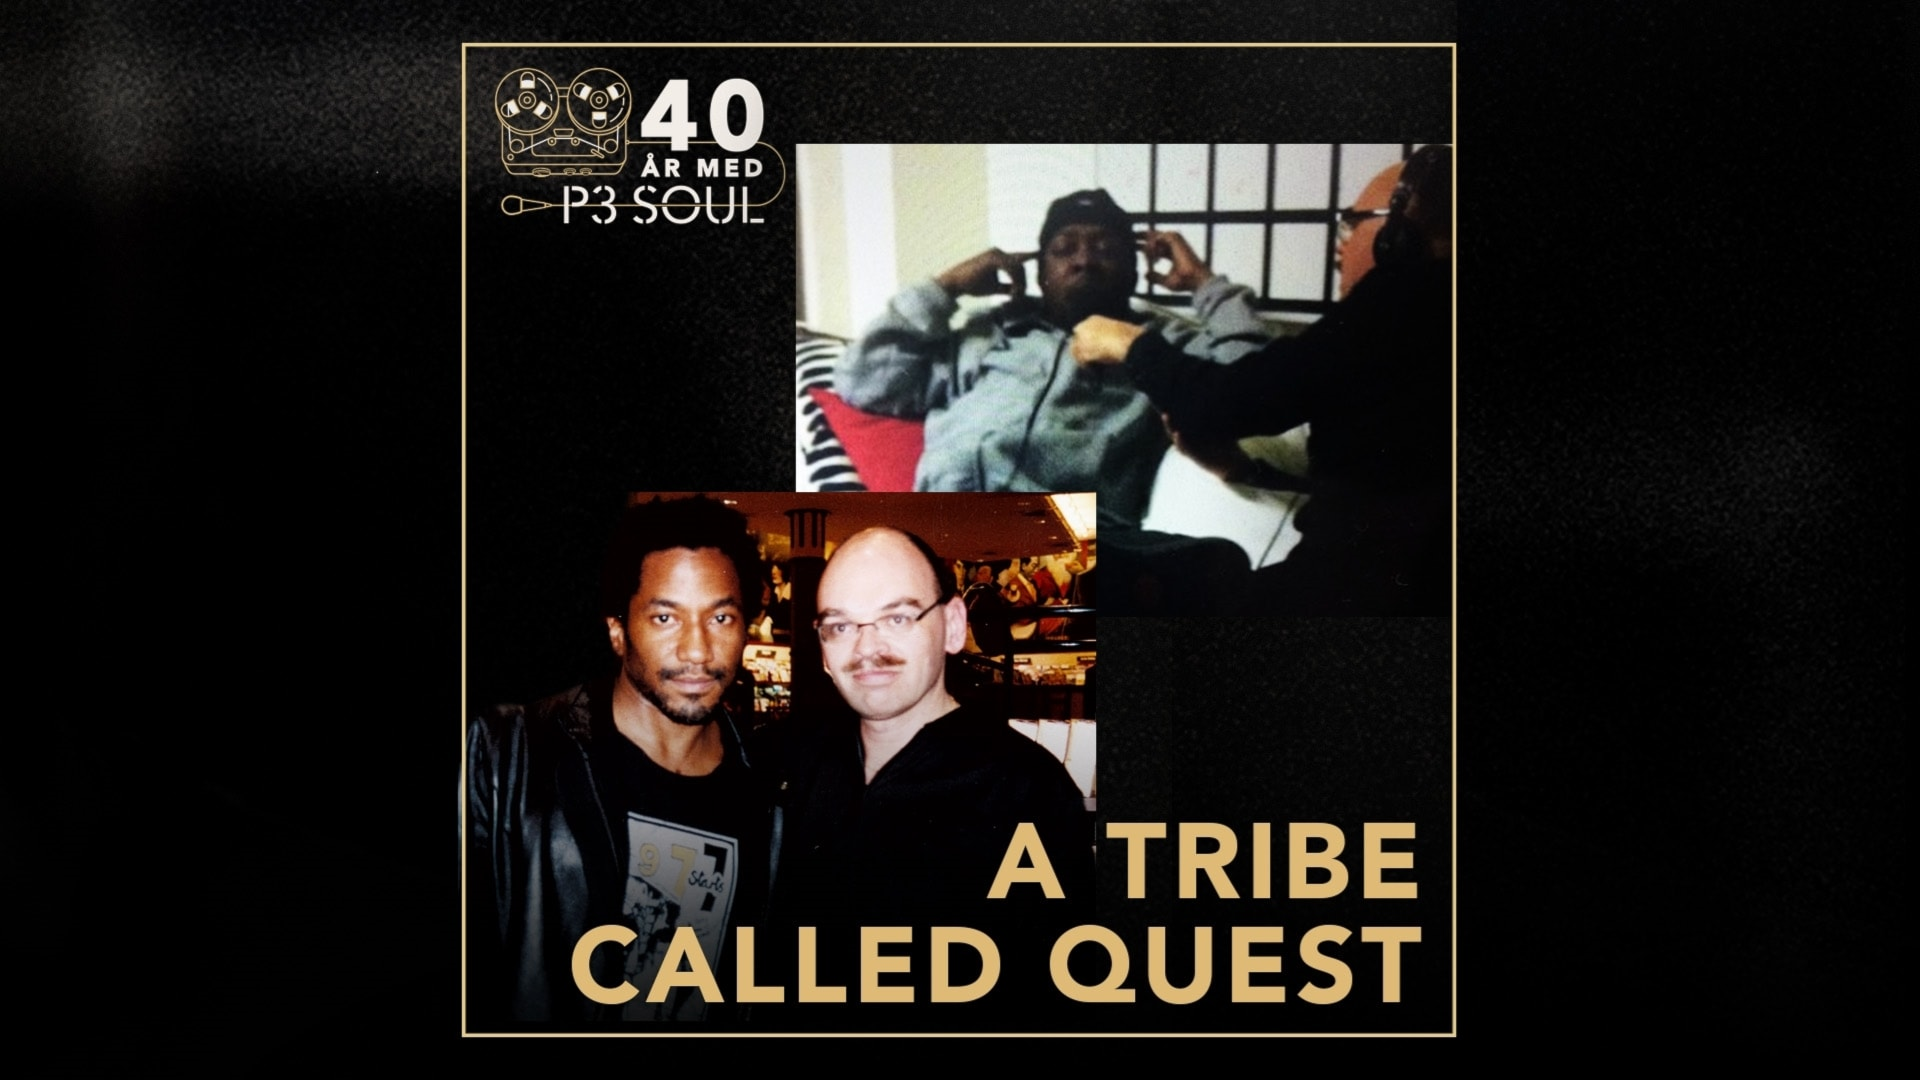 40 år med P3 Soul: A Tribe Called Quest